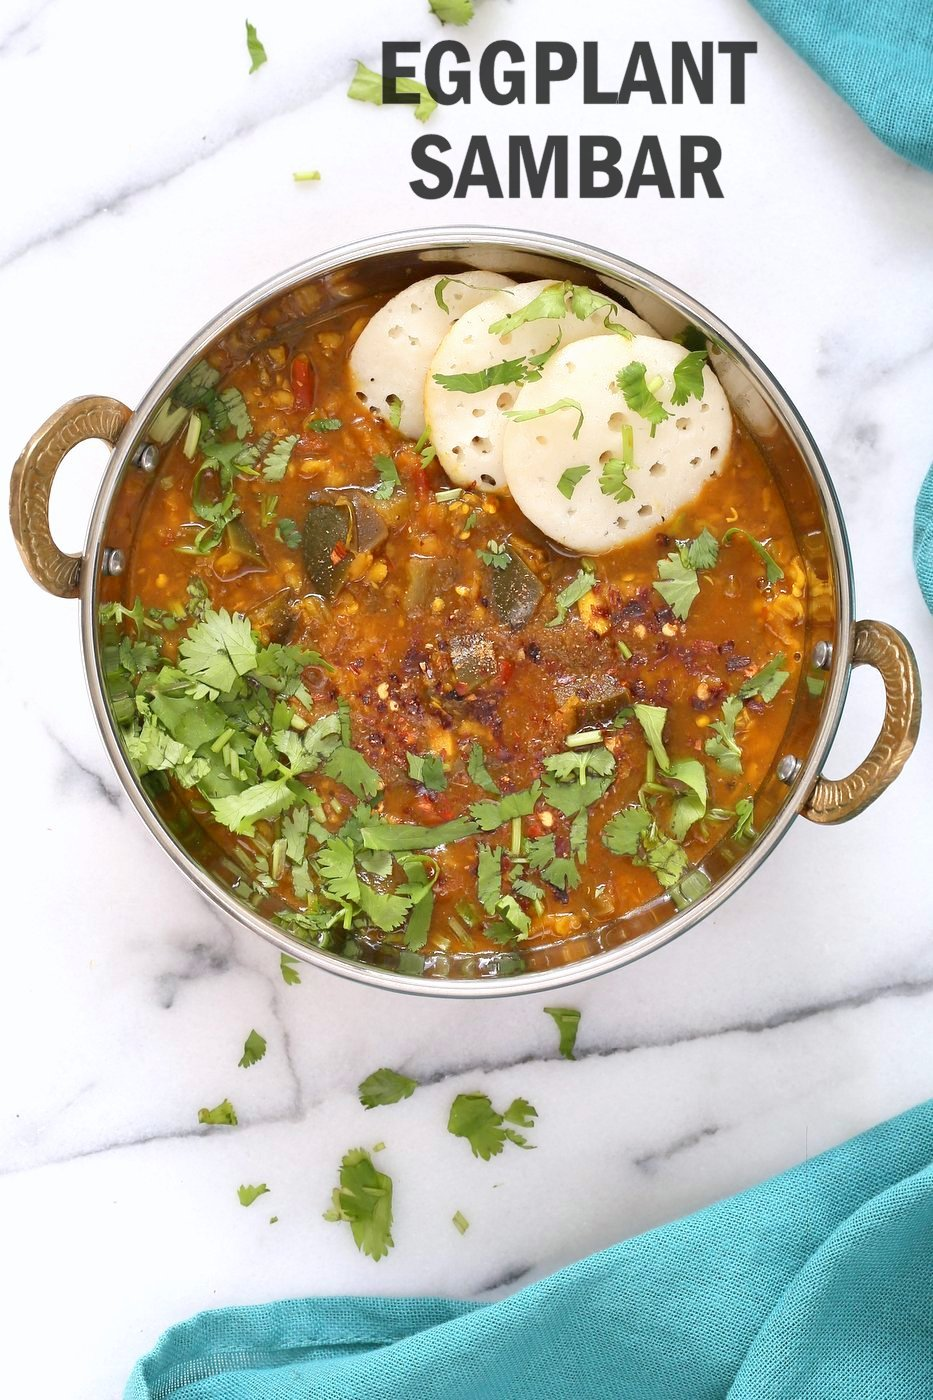 Eggplant Sambar Recipe - Indian Yellow Lentil Tamarind Dal. Toor Dal Sambar with Eggplant or other seasonal veggies. Instant Pot or Saucepan Vegan Gluten-free Soy-free Nut-free Recipe | VeganRicha.com